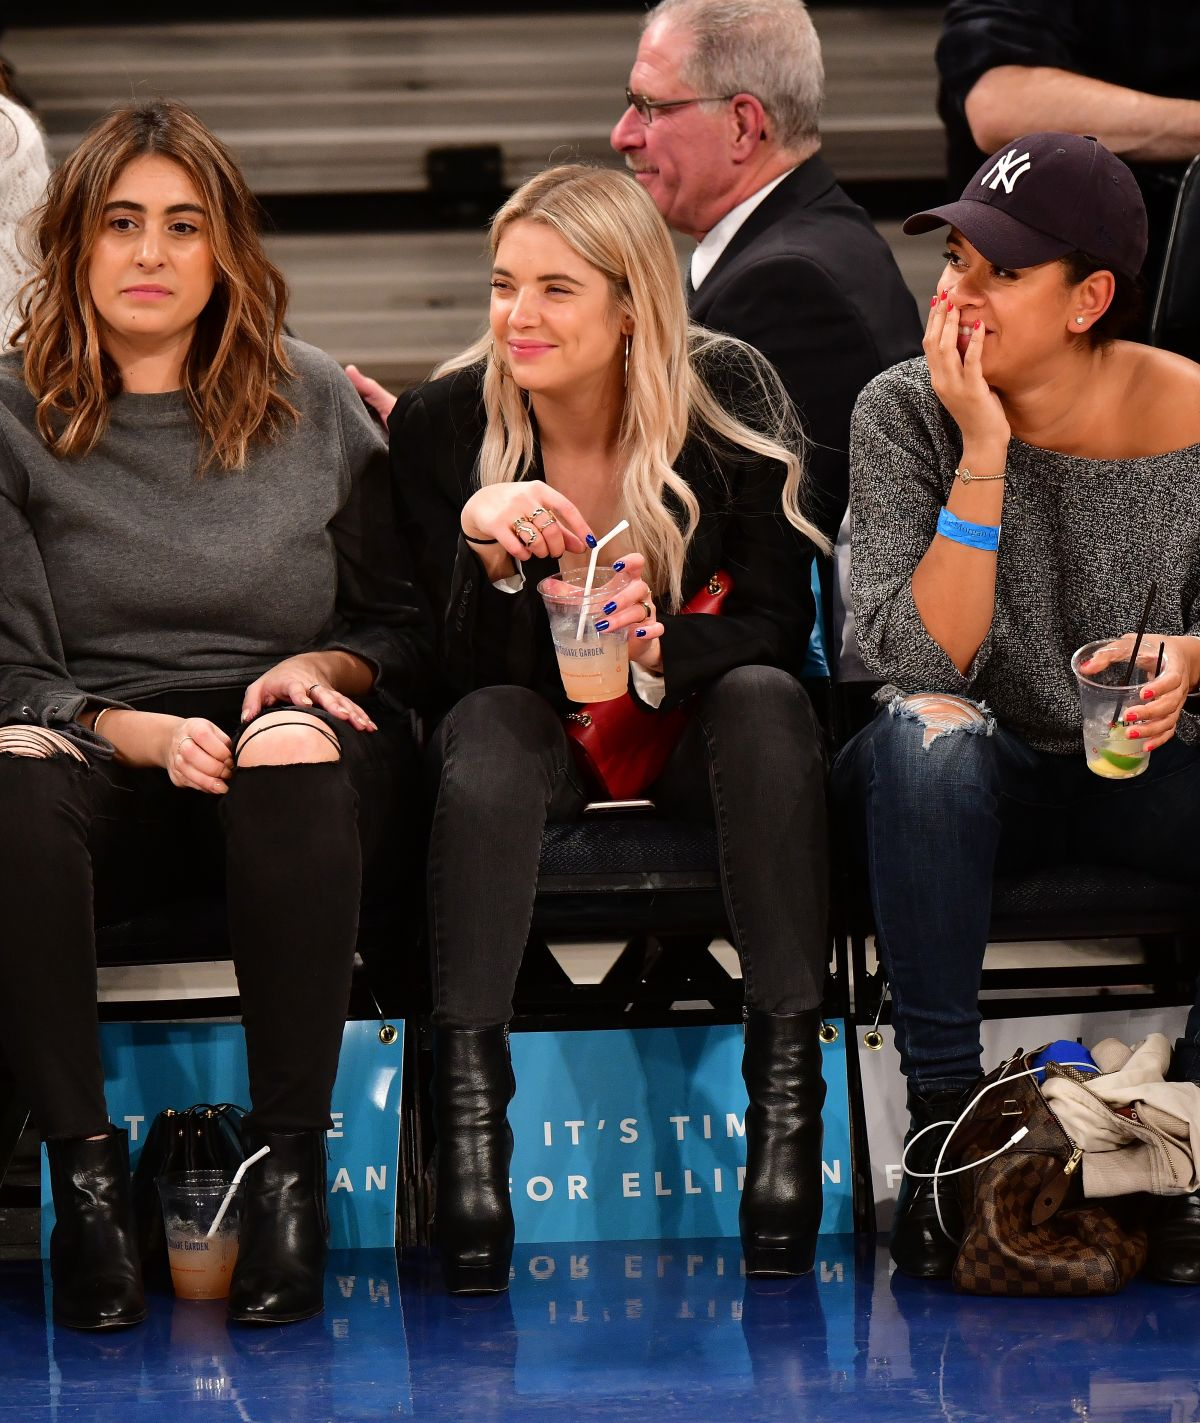 Ashley Benson At the Nets vs Knicks game in NYC